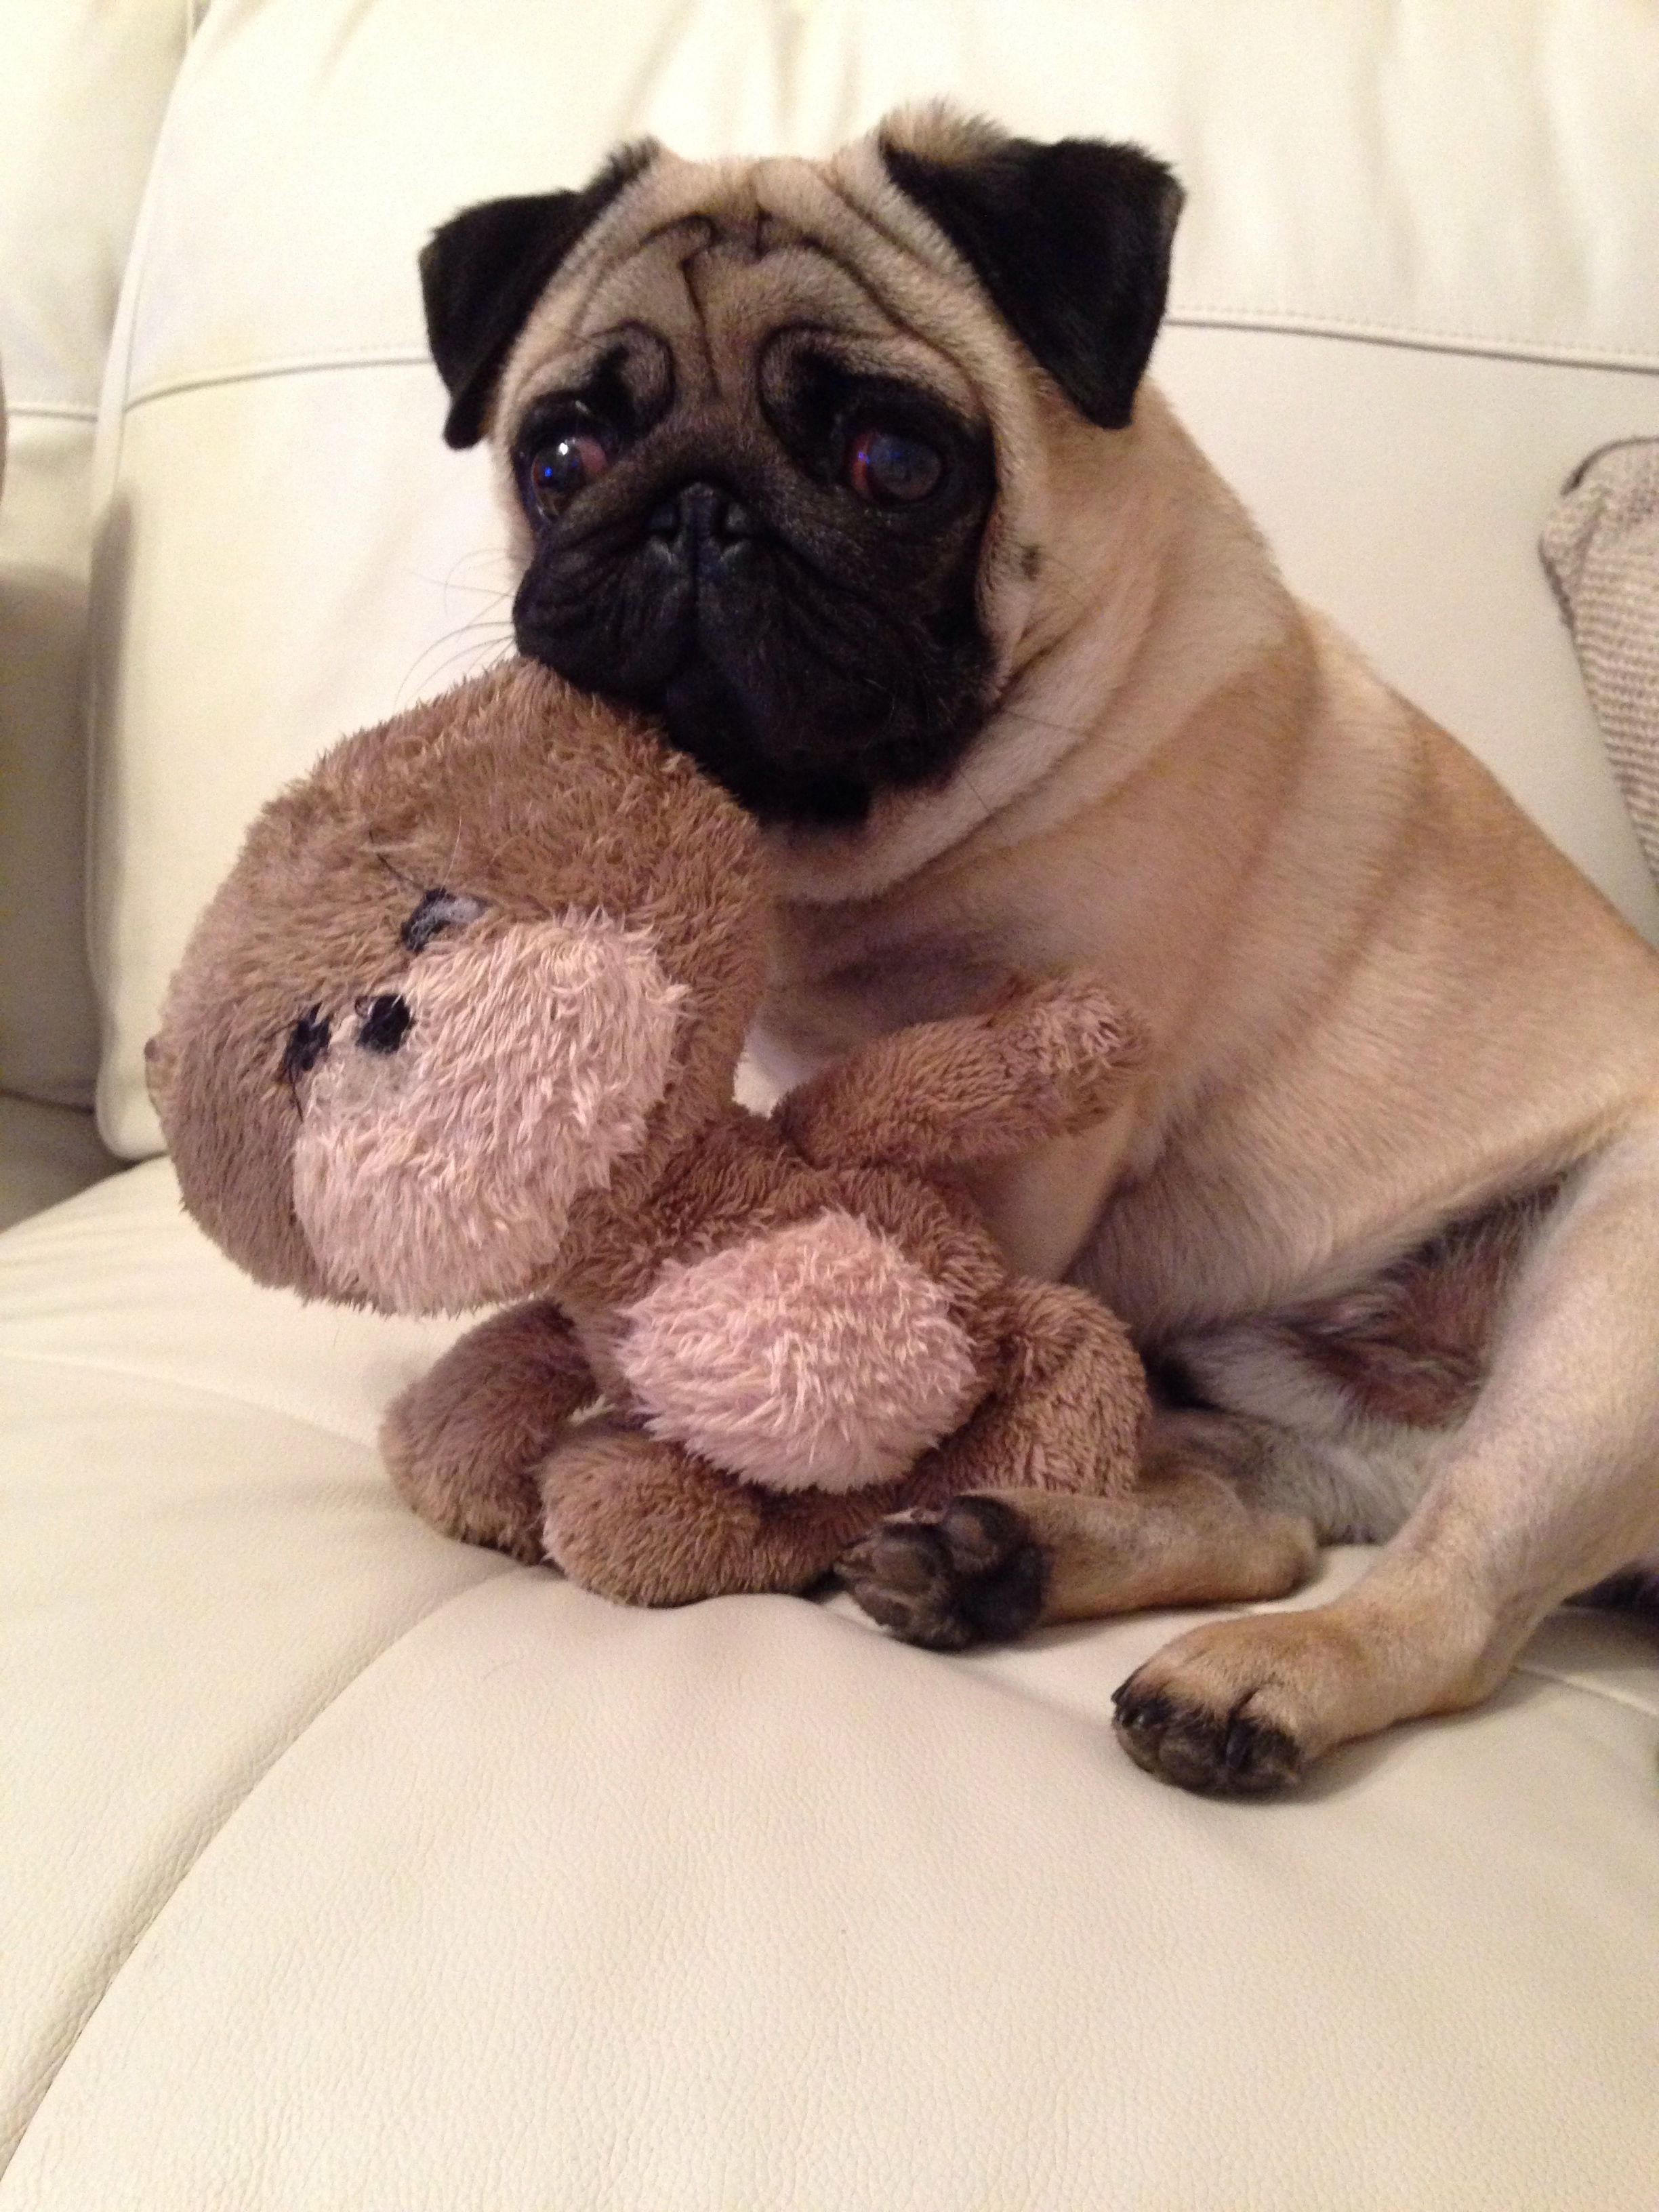 Big Ted Cute Pugs Dog Best Friend